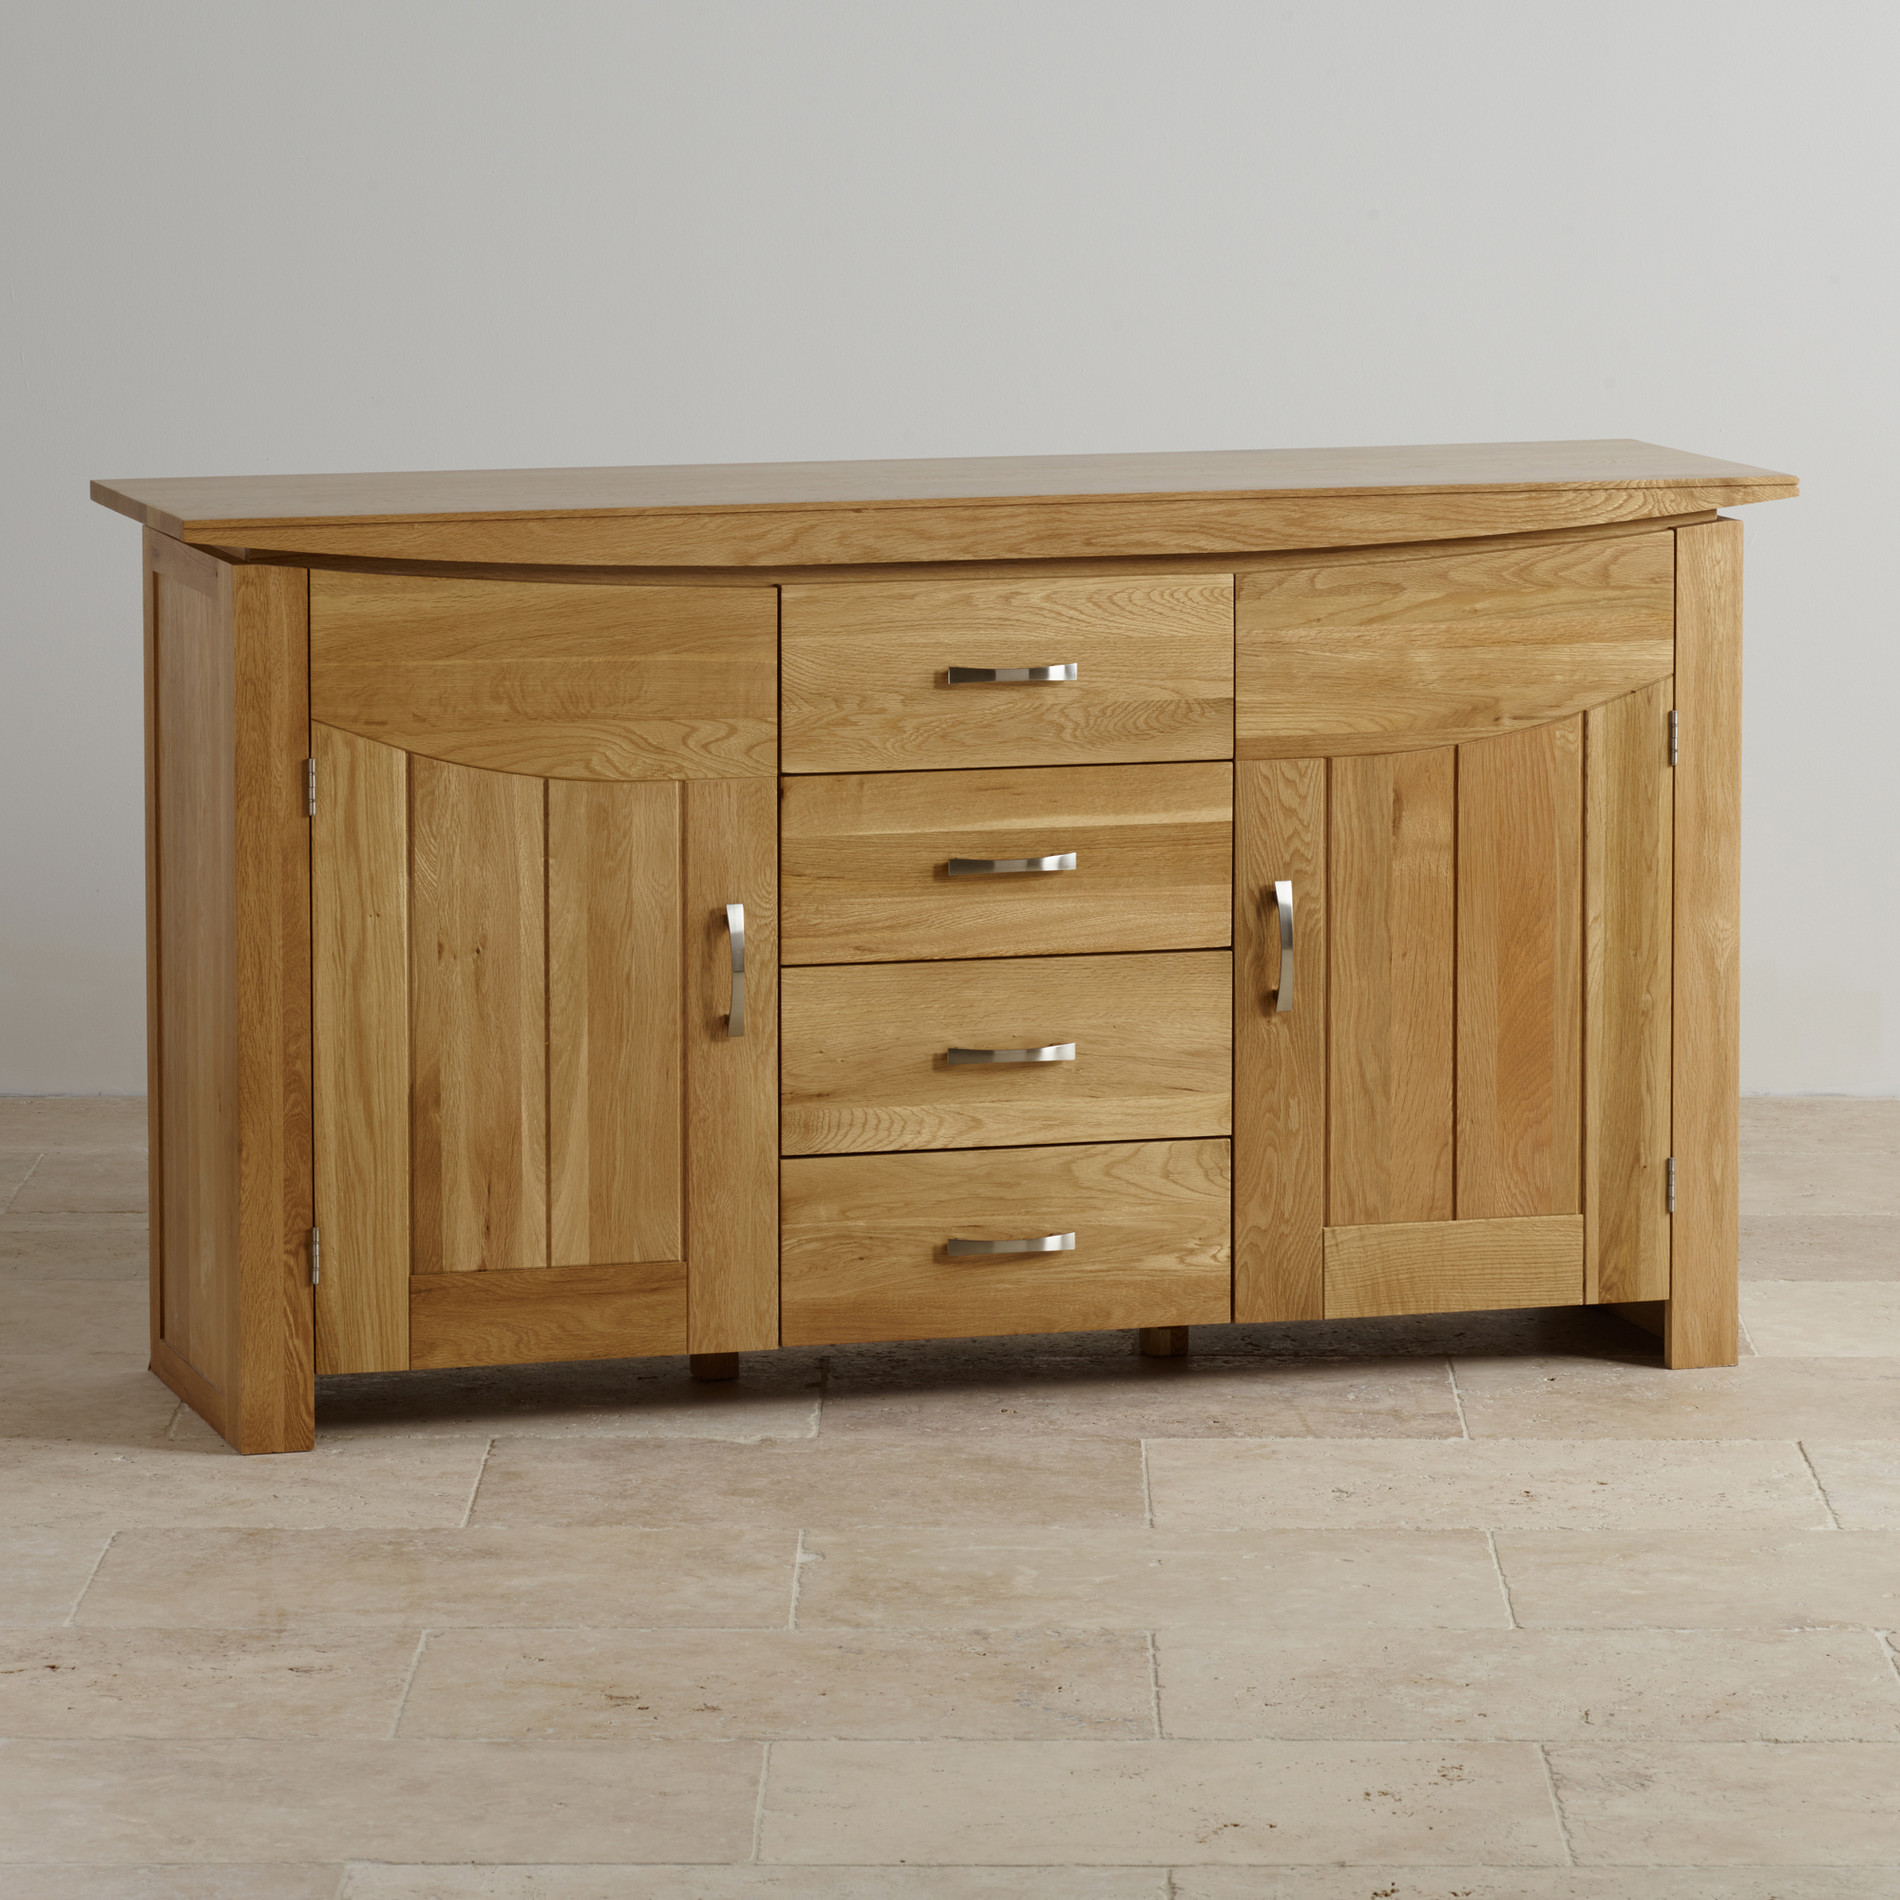 Solid Wood Dining Room Set Tokyo Large Sideboard In Natural Solid Oak Oak Furniture